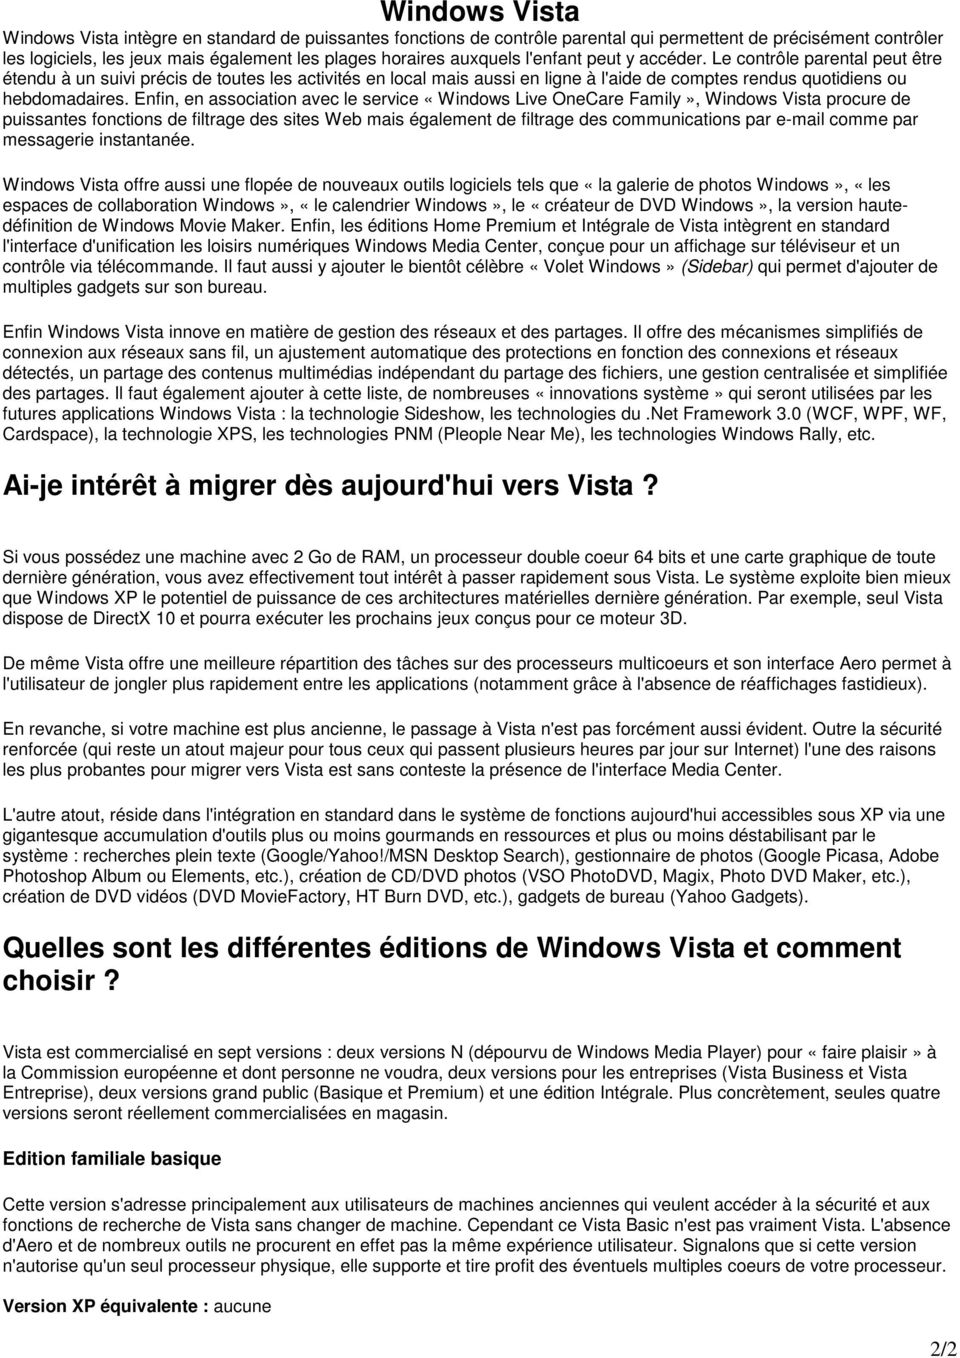 Enfin, en association avec le service «Windows Live OneCare Family», Windows Vista procure de puissantes fonctions de filtrage des sites Web mais également de filtrage des communications par e-mail